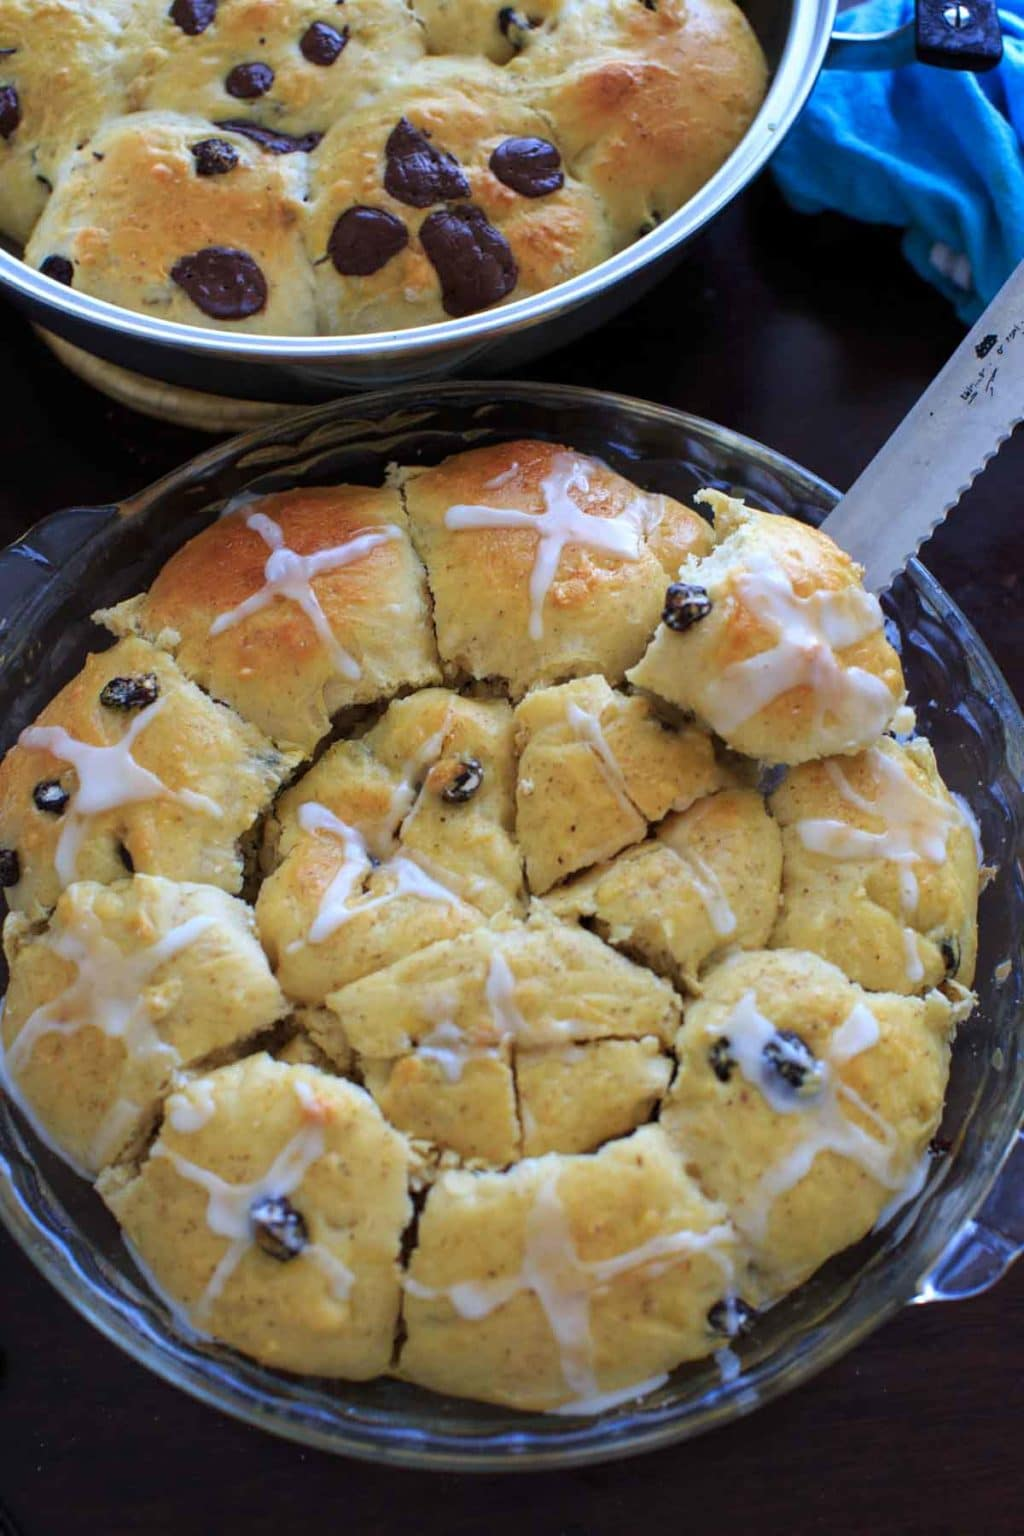 Hot Cross Buns with the options for added dark chocolate pieces and raisins and/or dried cherries. Makes two dozen.